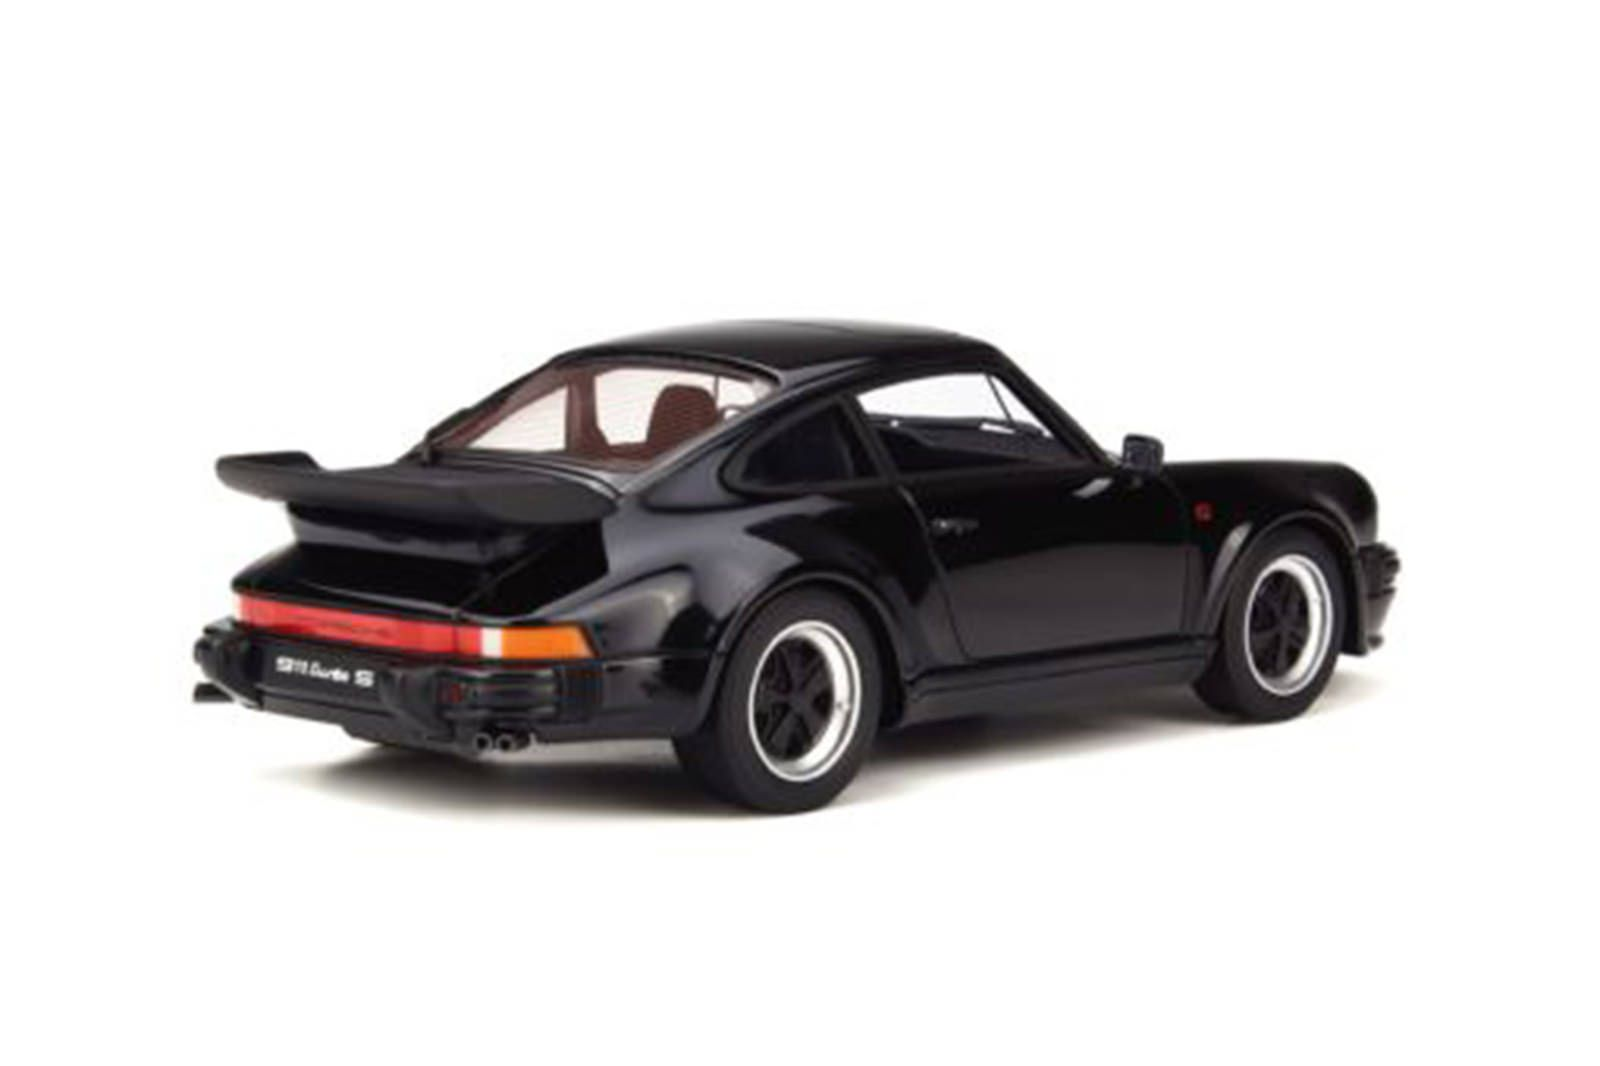 Model Cars - 1:18 Porsche 911 Turbo S  #748/900 - Discounted Slightly Damaged